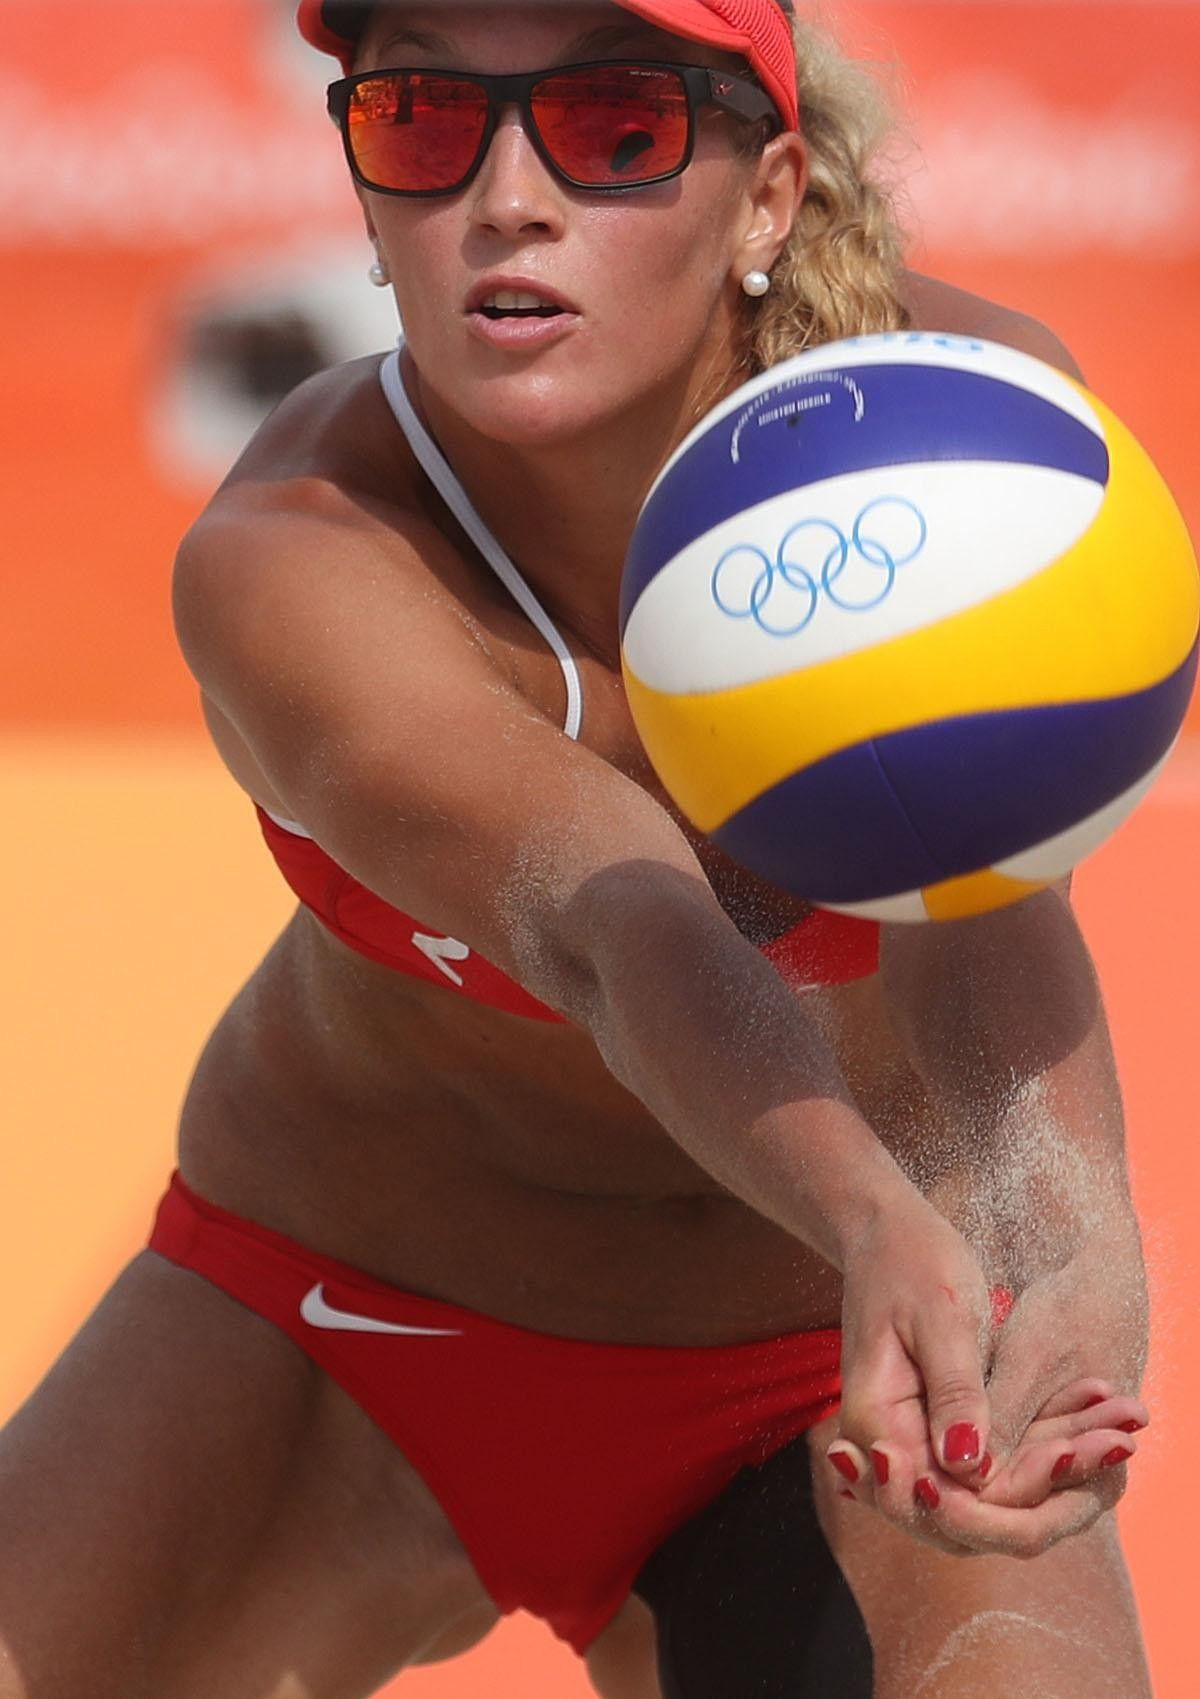 Photos Women S Beach Volleyball At The Rio Olympics Sport Feminin Sport Olympique Fitness Et Musculation